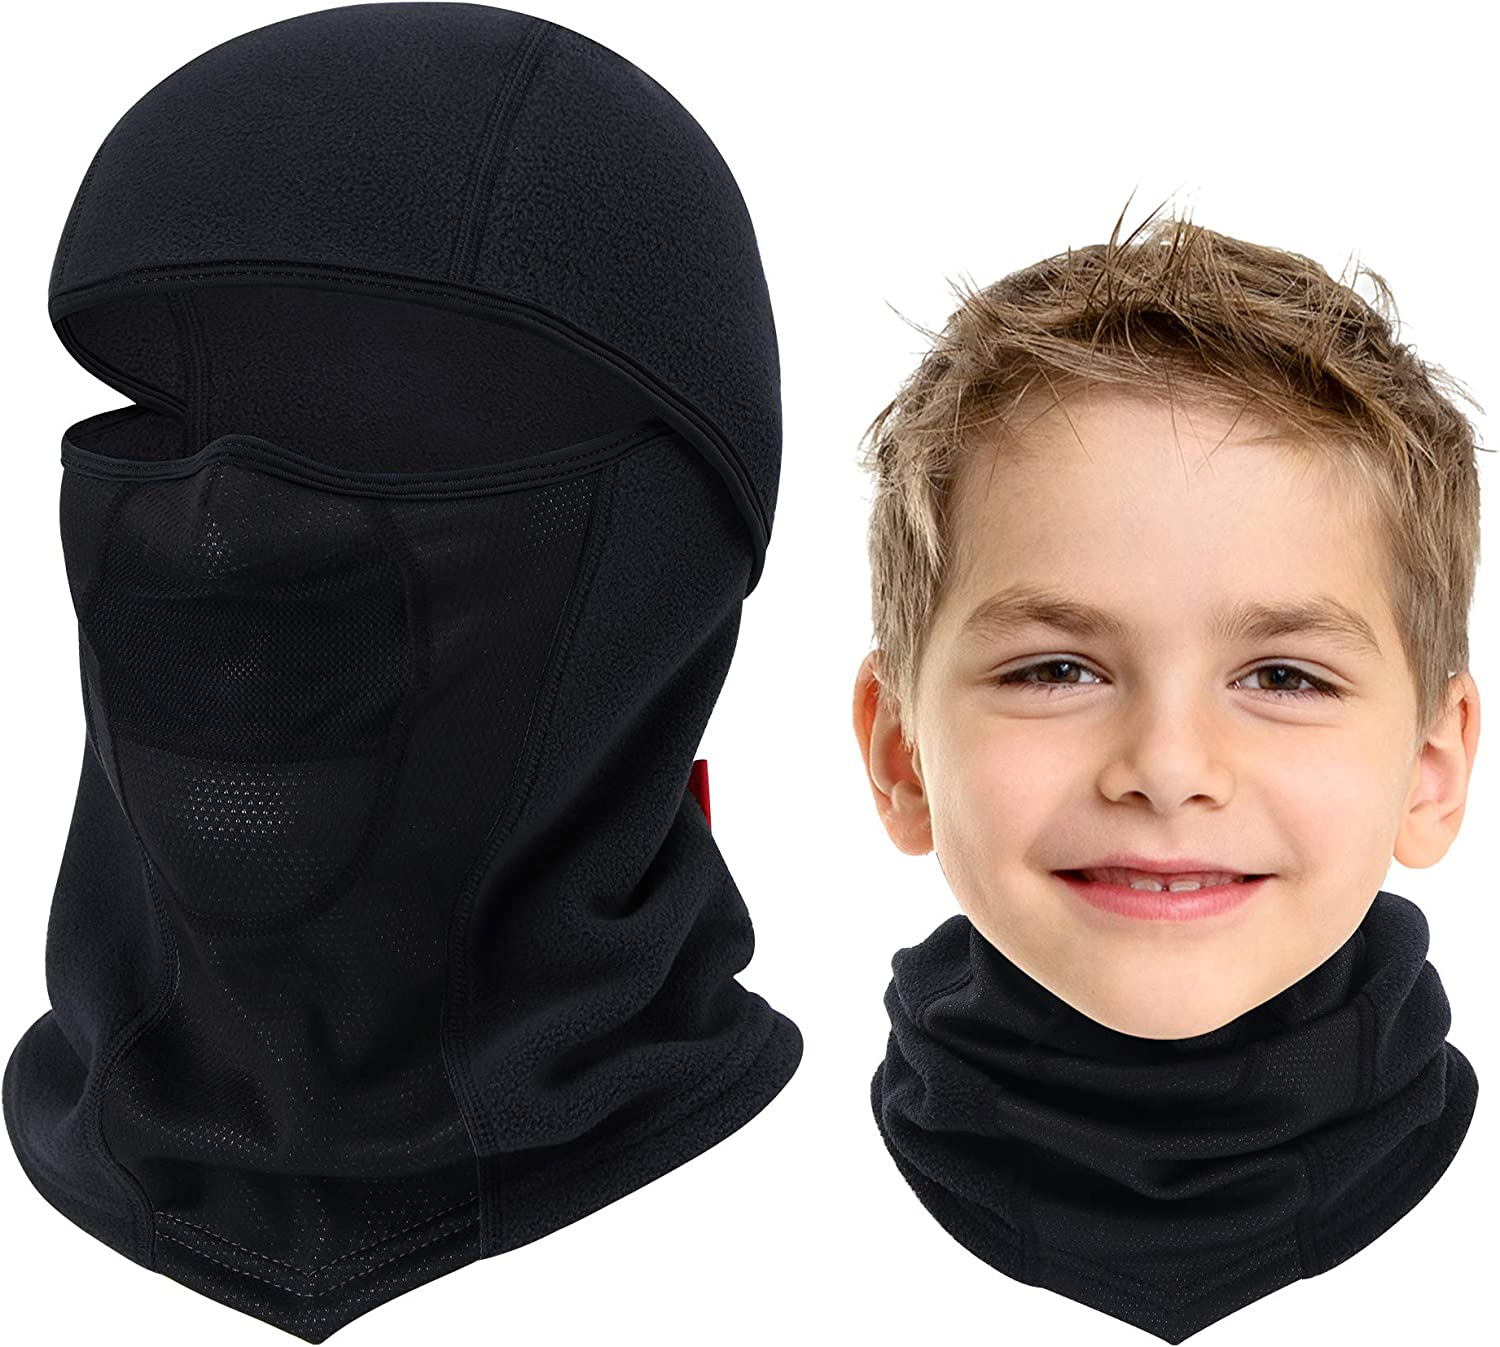 Breathable Kids Balaclava Ski Mask, Waterproof Face Mask for Boys...